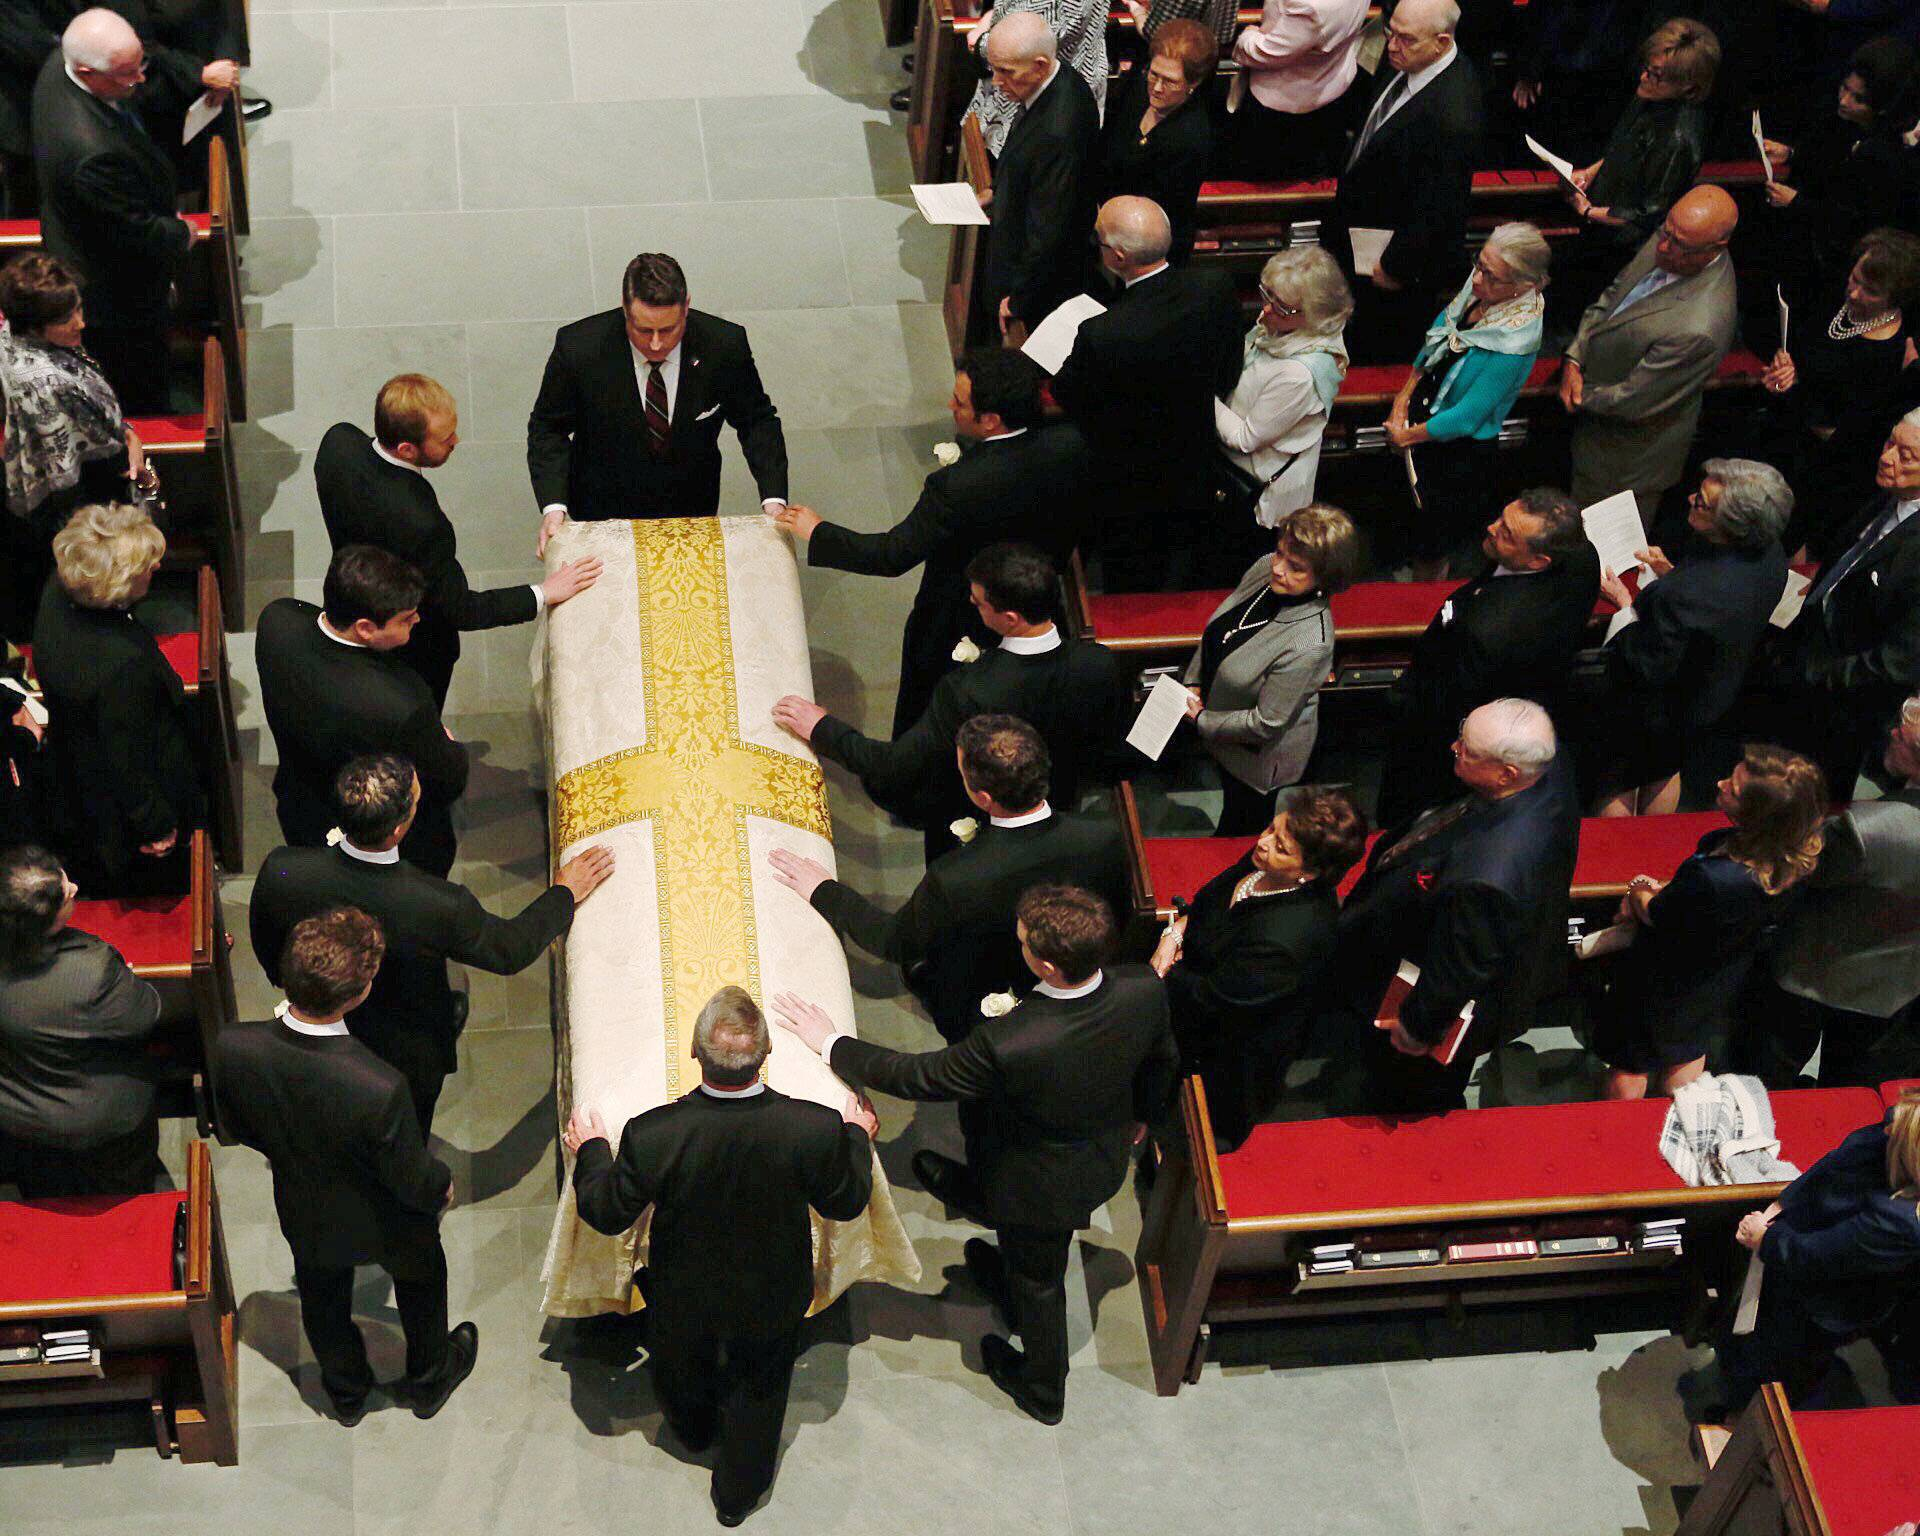 The casket is brought into St. Martin's Episcopal Church during funeral services for former first lady Barbara Bush in Houston